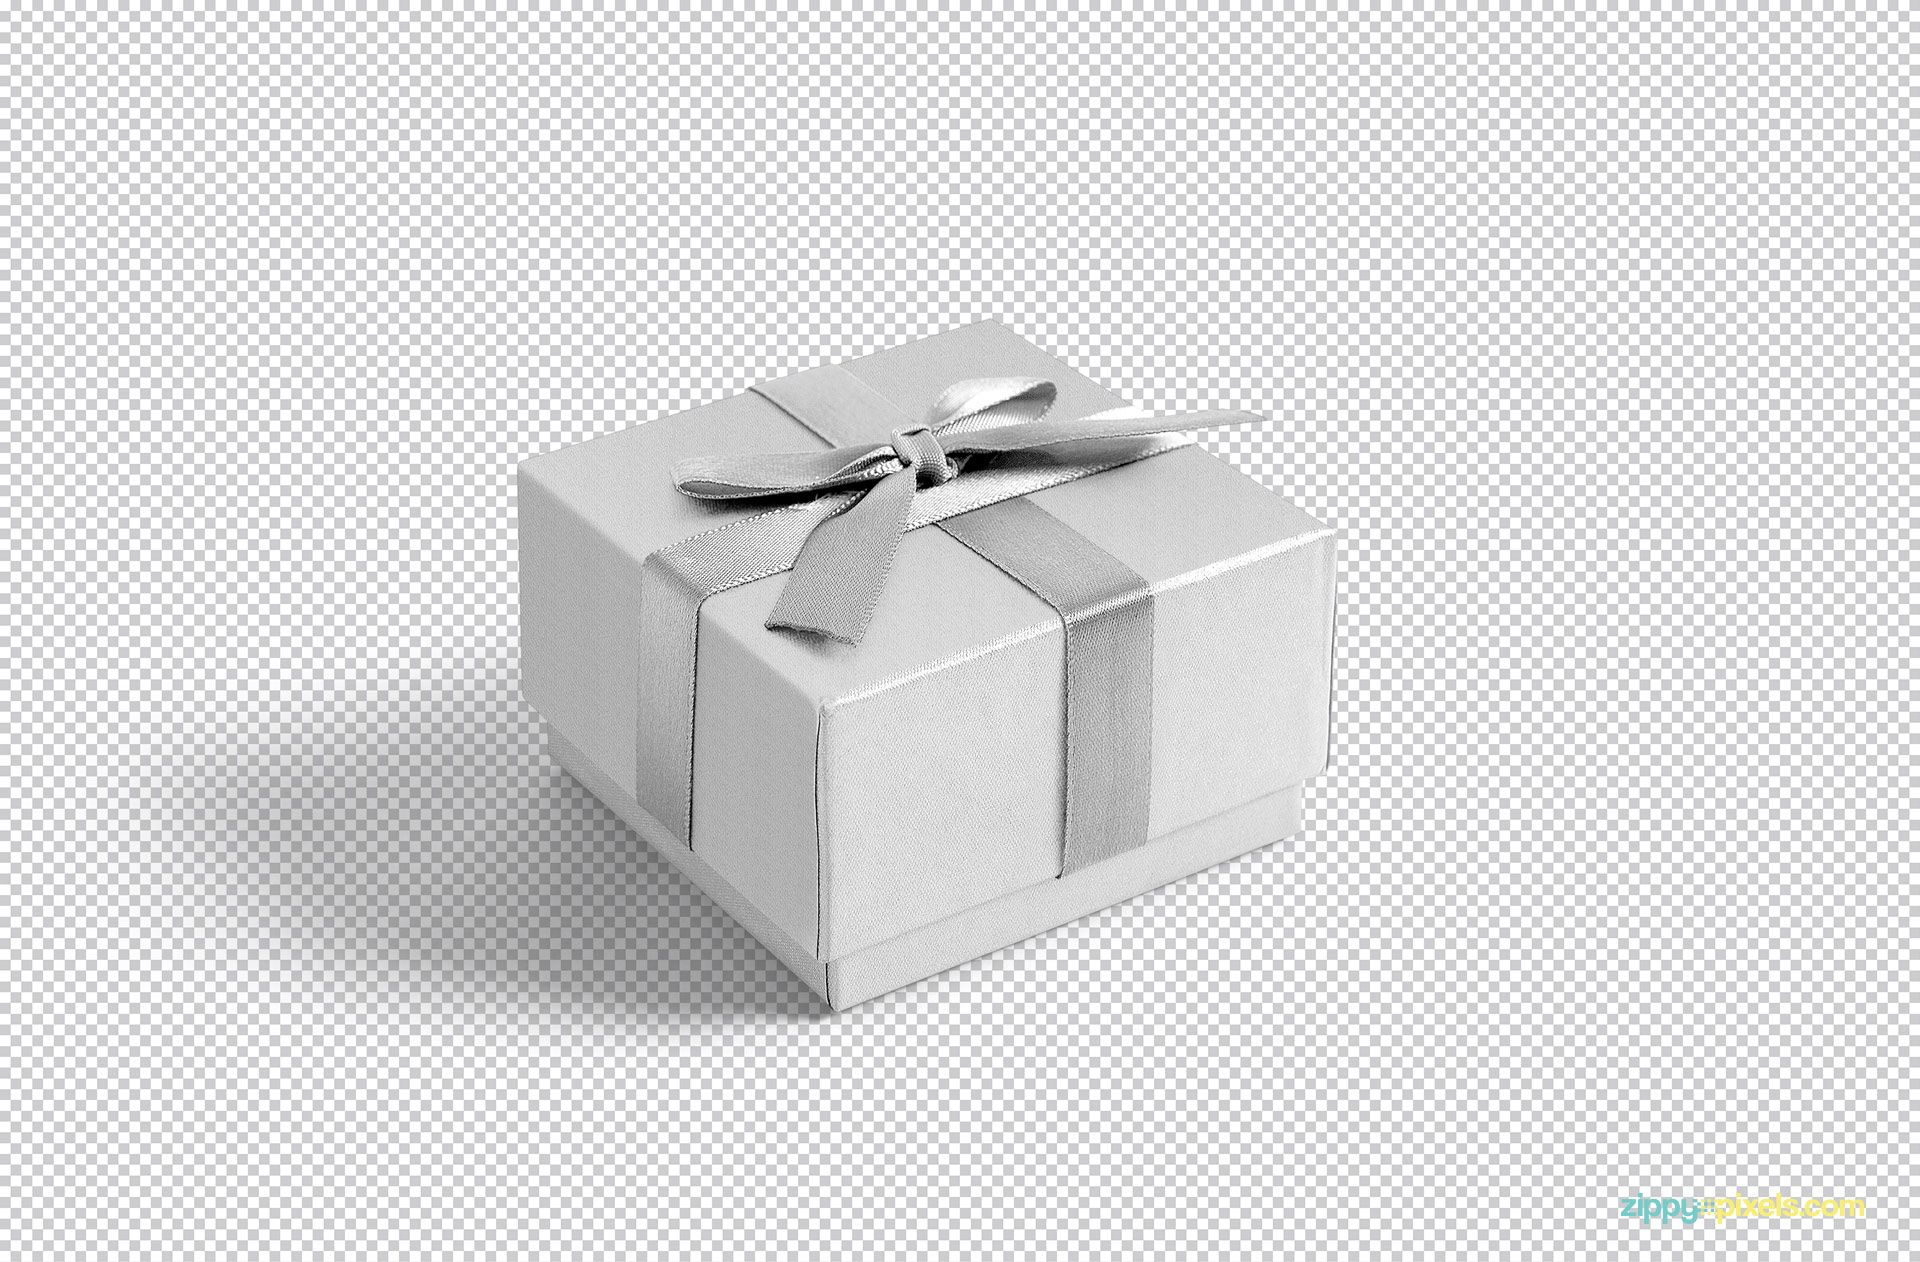 Download Gorgeous Free Gift Box Mockup Psd Zippypixels Box Mockup Mockup Psd Mockup